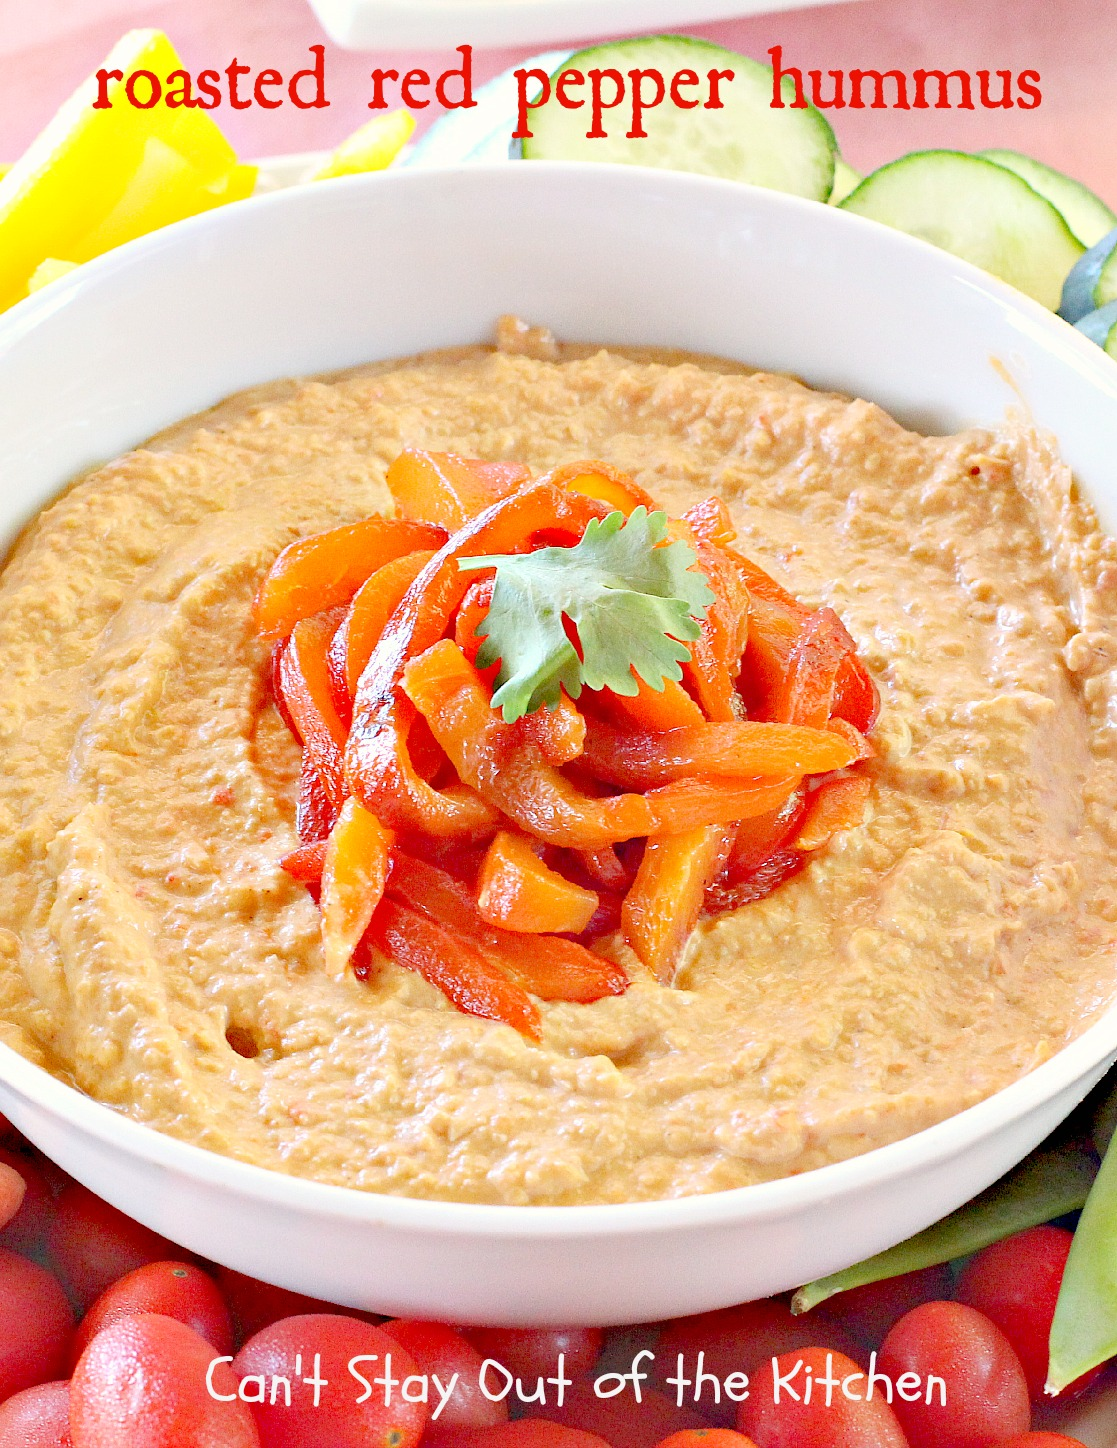 Hummus recipes can 39 t stay out of the kitchen for Roasted red peppers hummus